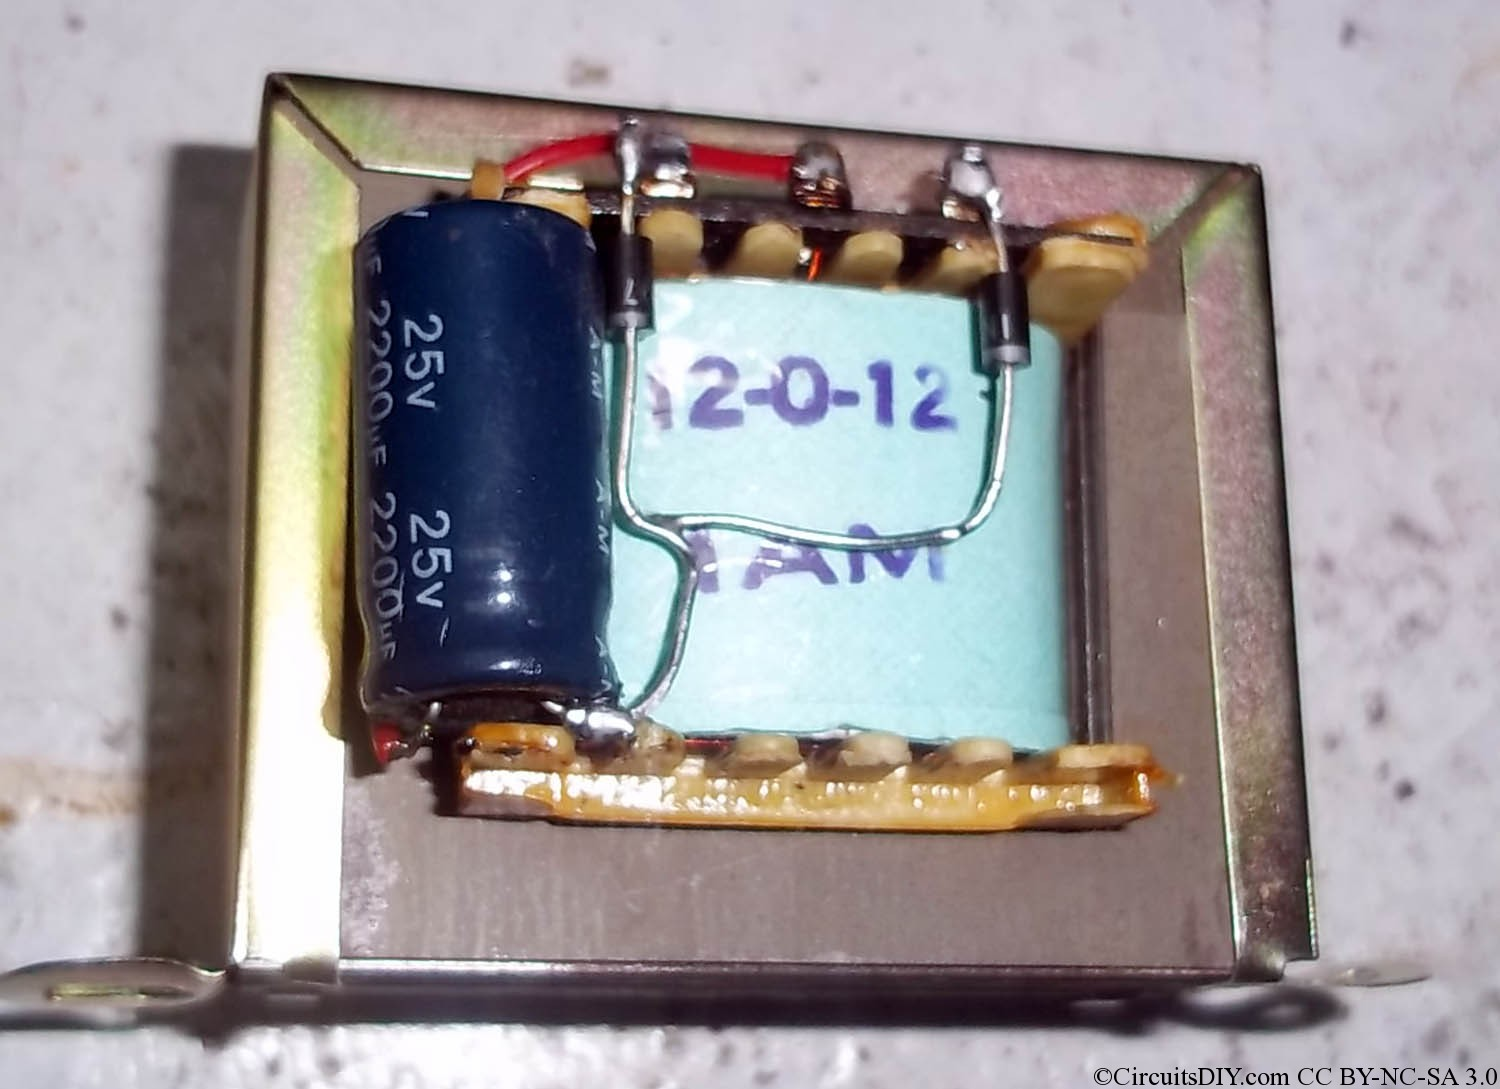 12 Volt 24 Lead Acid Battery Charger Circuit Homemade Dc Soldering Iron Driver Circuits Diy Ive Used Mp3 Player Cabinet For Fitting A Switch Transformer Voltage Adjusting Lm317 And The Output Rca Jack Led